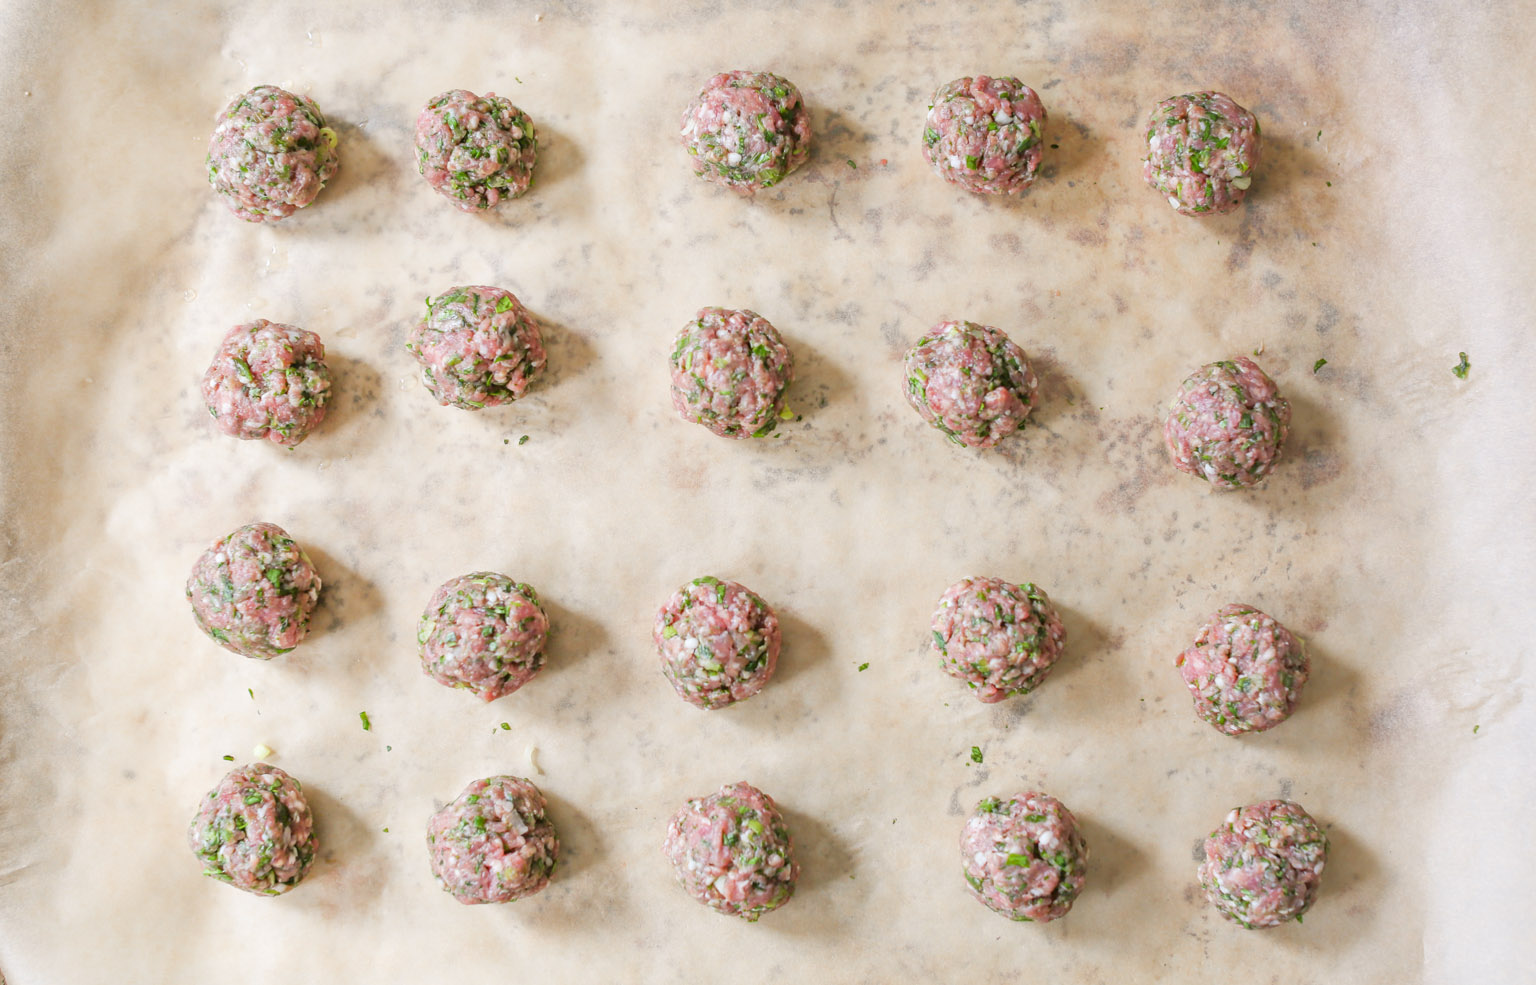 Rolled spiced lamb meatballs on a parchment-lined baking sheet before going into the oven.